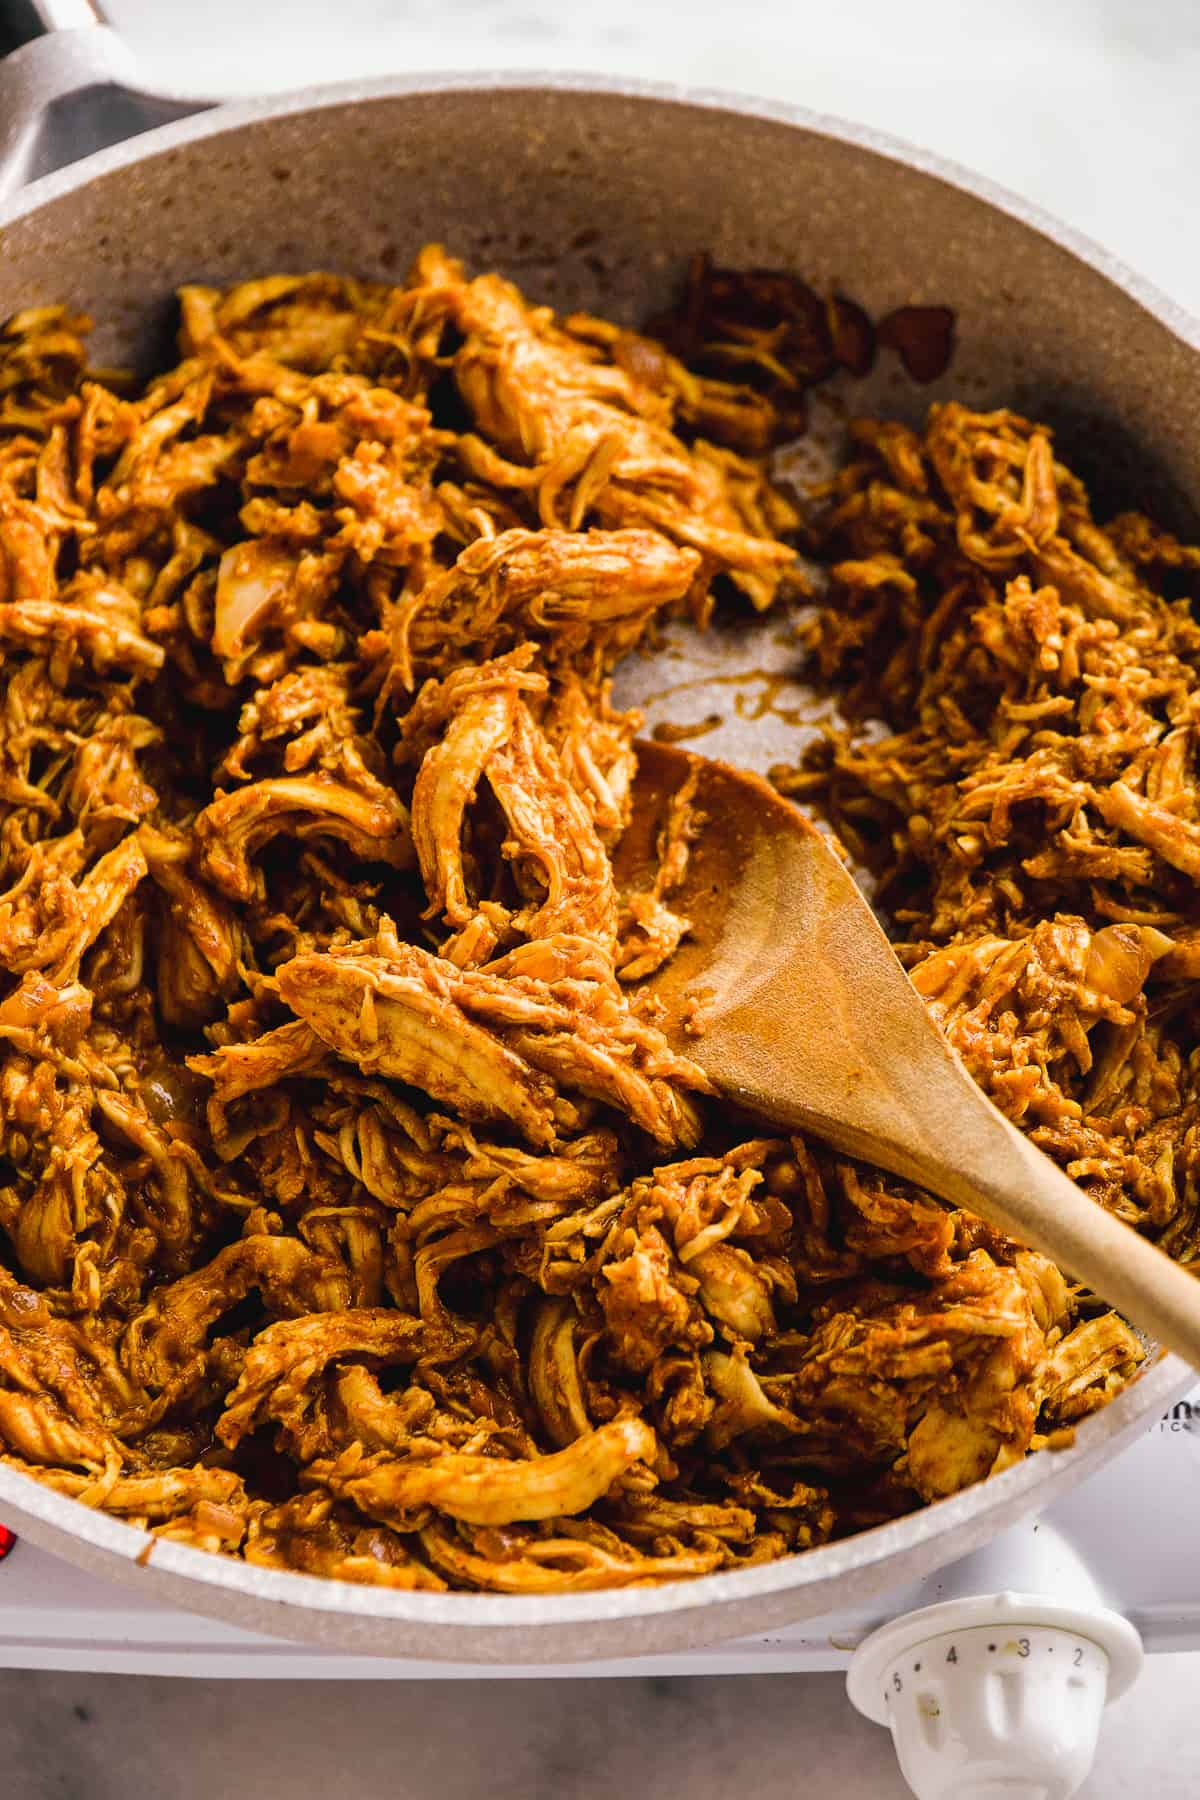 Skillet with pulled spiced chicken and a wooden spoon.